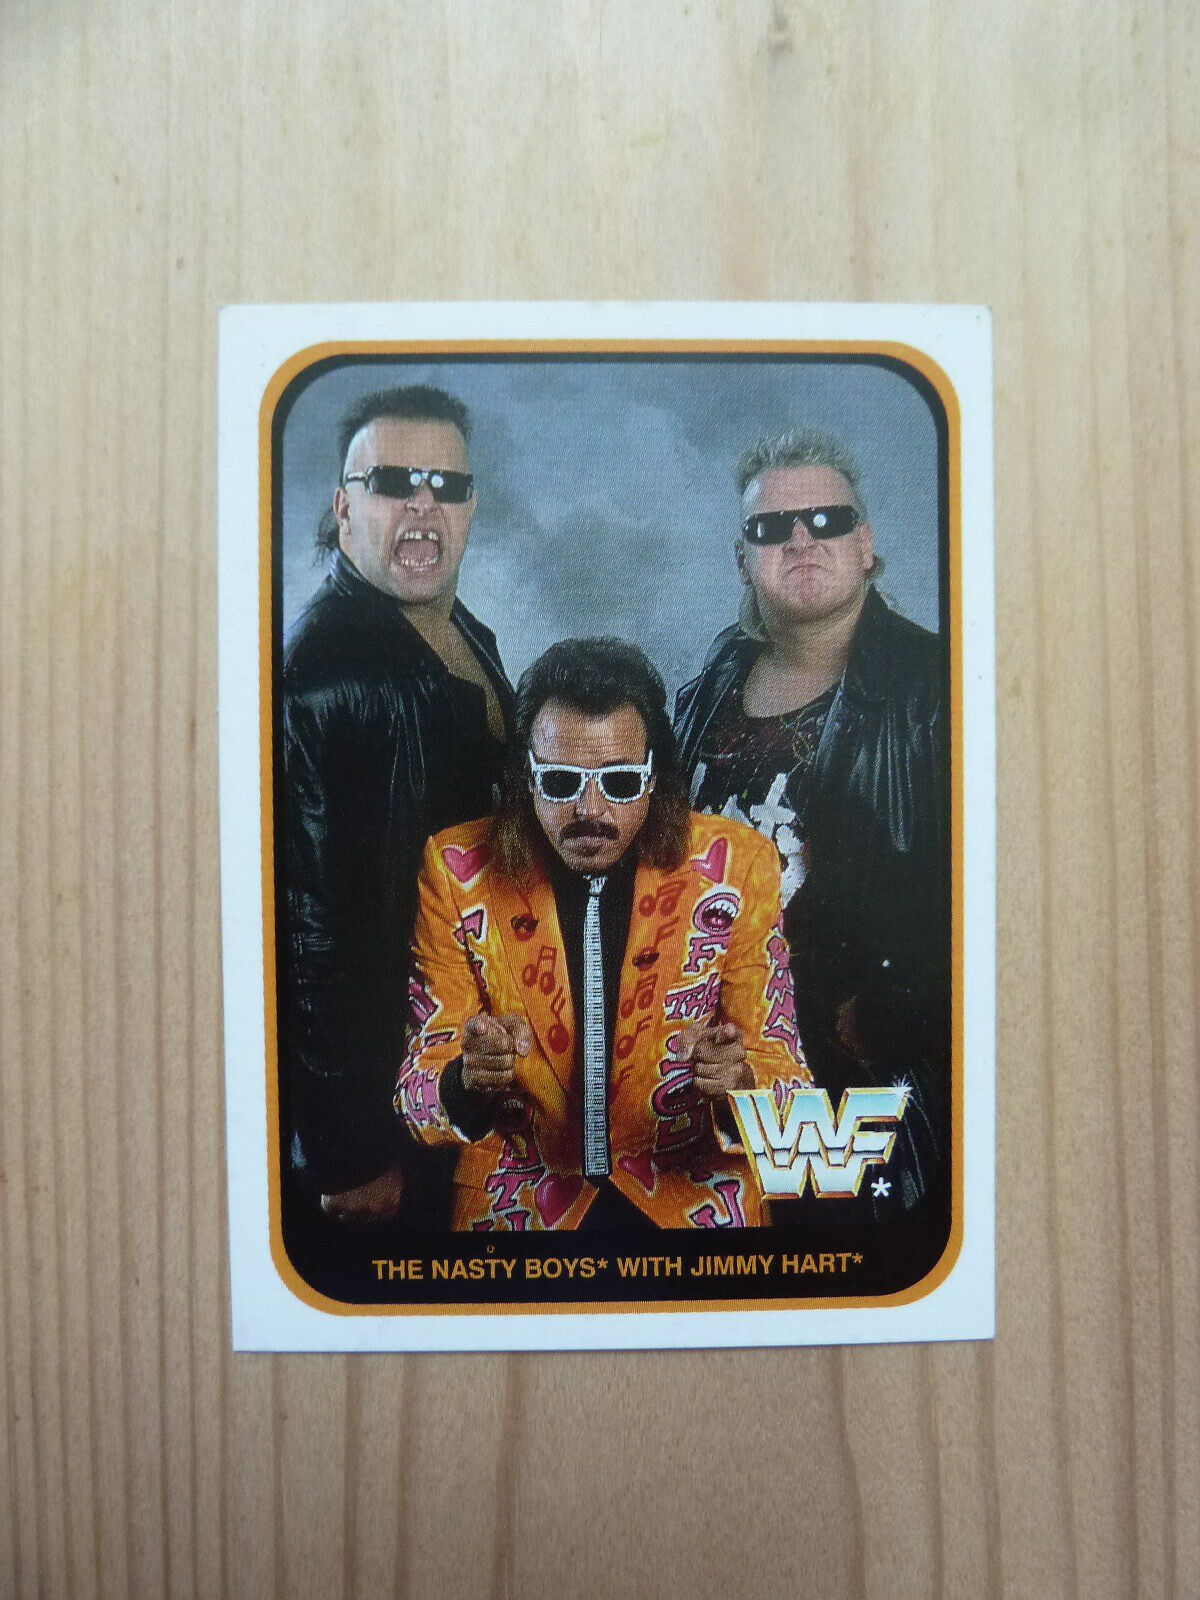 THE NASTY BOYS WITH JIMMY HART - WWF Wrestling Sammelkarte Nr. 6 (Merlin 1991)